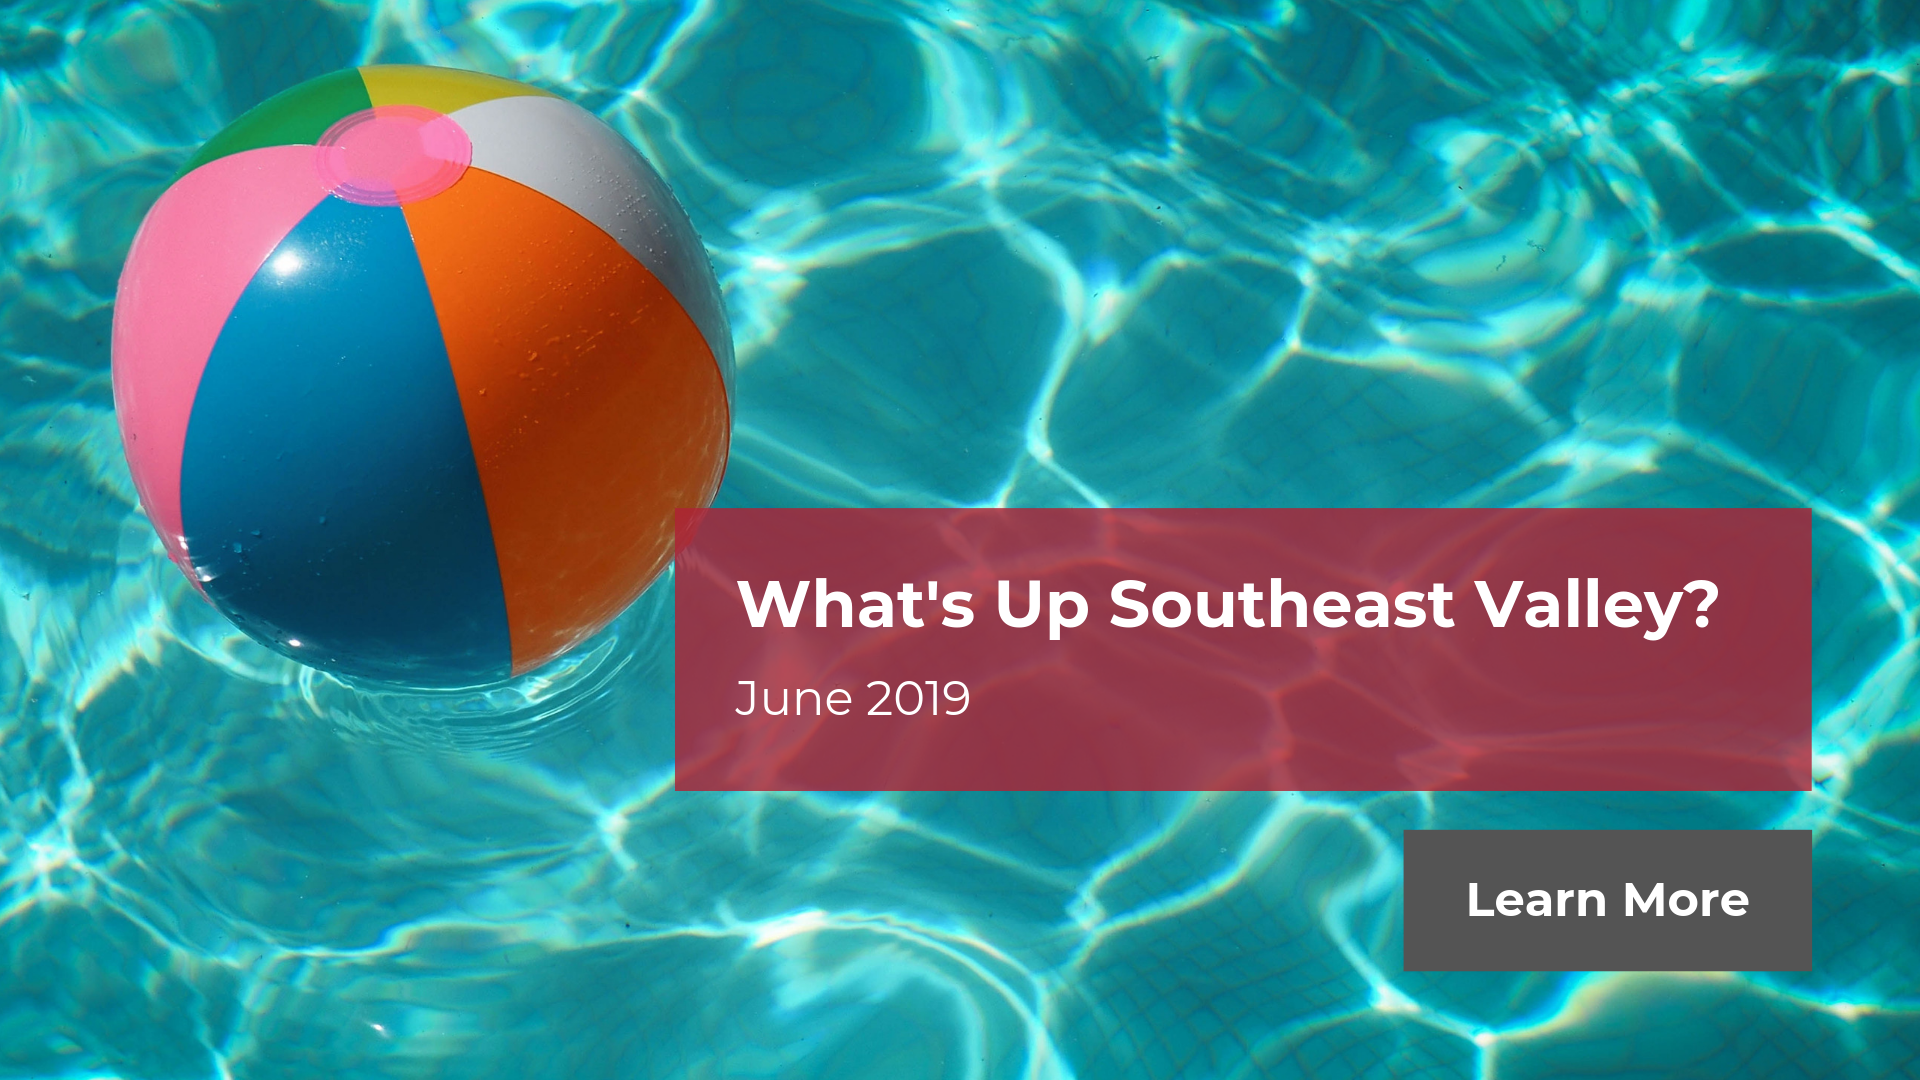 What's Up Southeast Valley? - June 2019 | Amy Jones Group